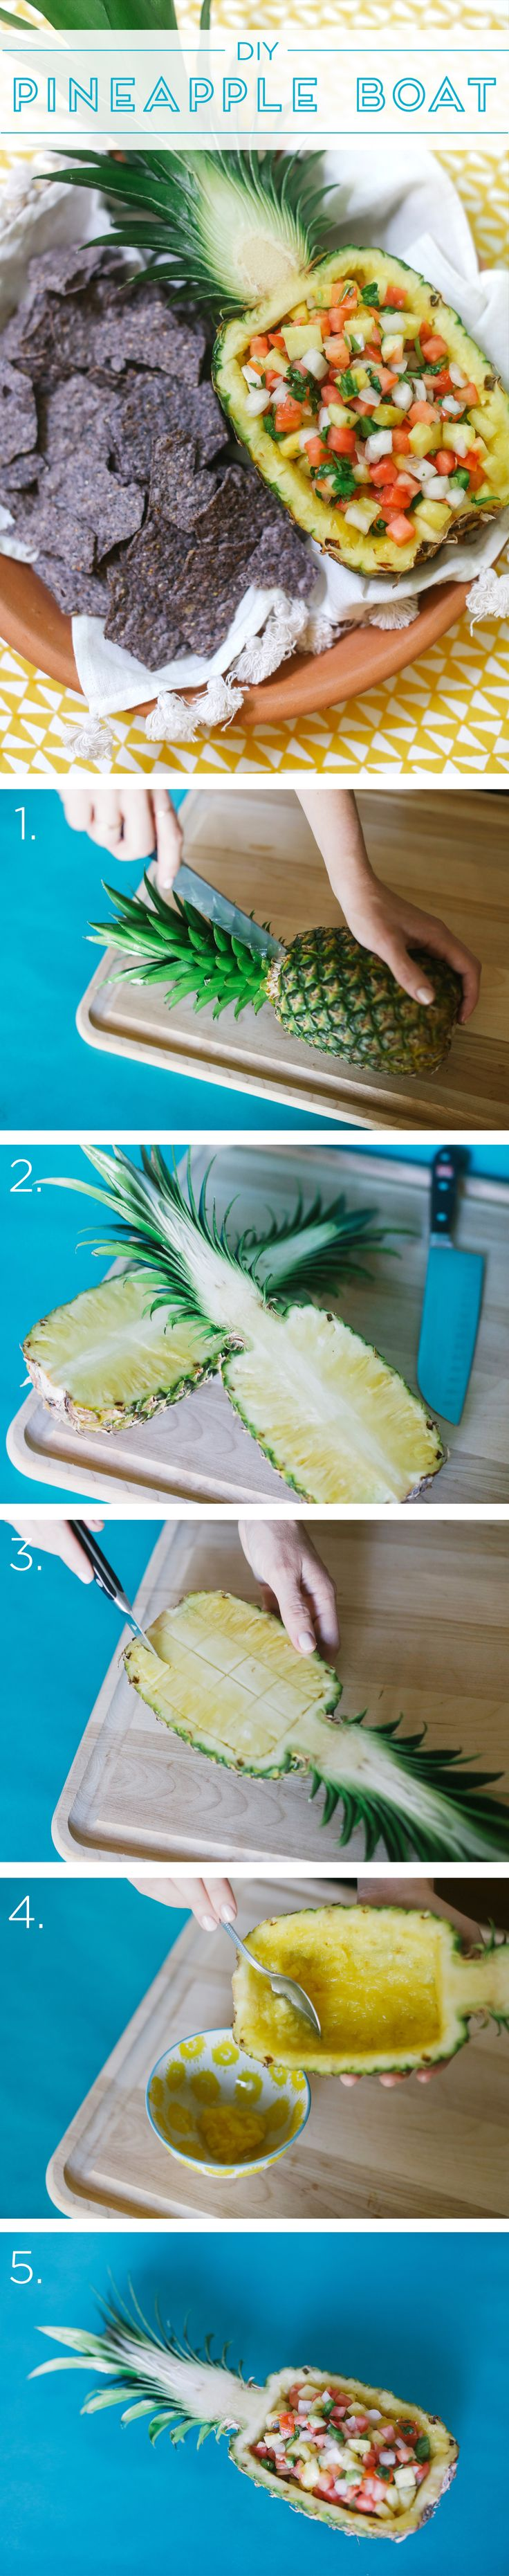 Present dip in a #DIY pineapple boat for maximum wow-factor! Pair with @fstgchips for a more healthy take on chips & dip. (Healthy Baby Cake)